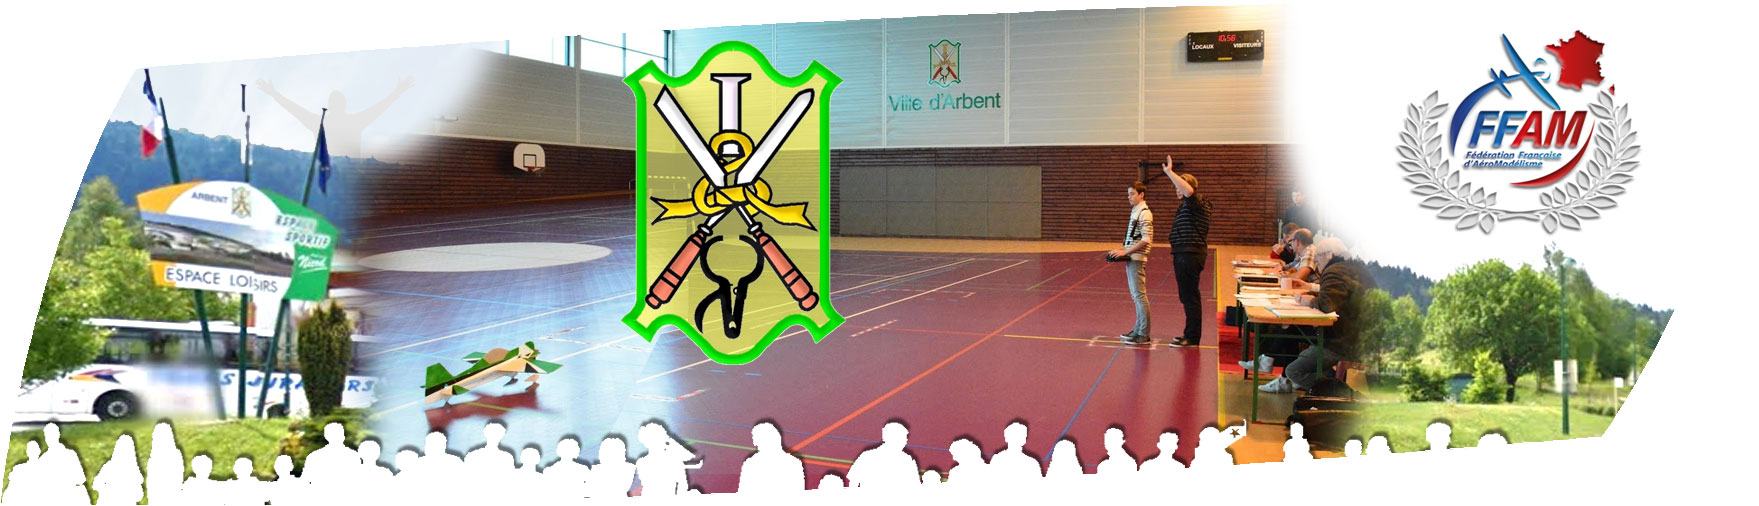 Championnat de France Vol Indoor